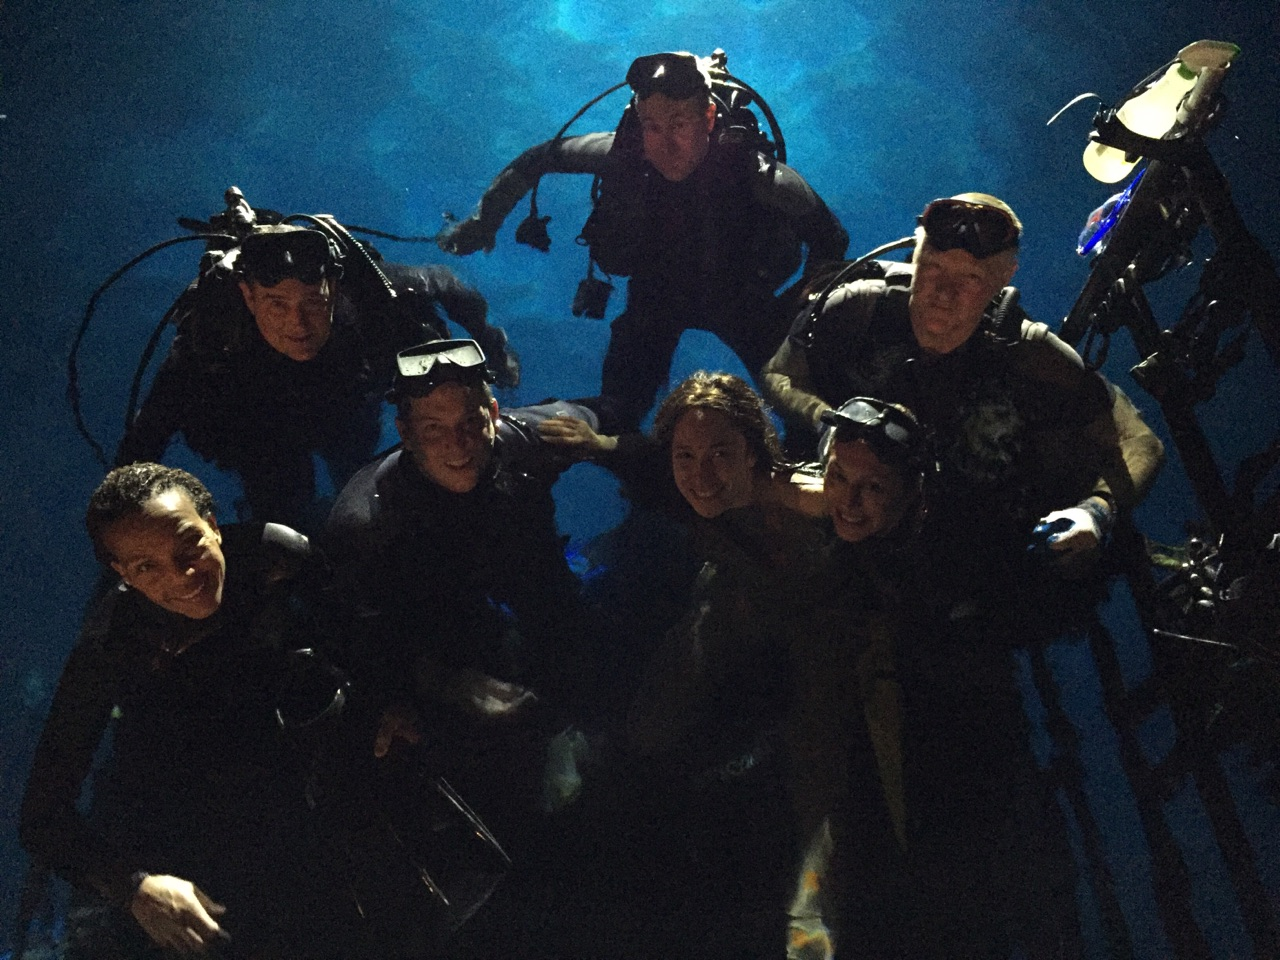 On The Set With Vancouver's World-Class Underwater Film Crew